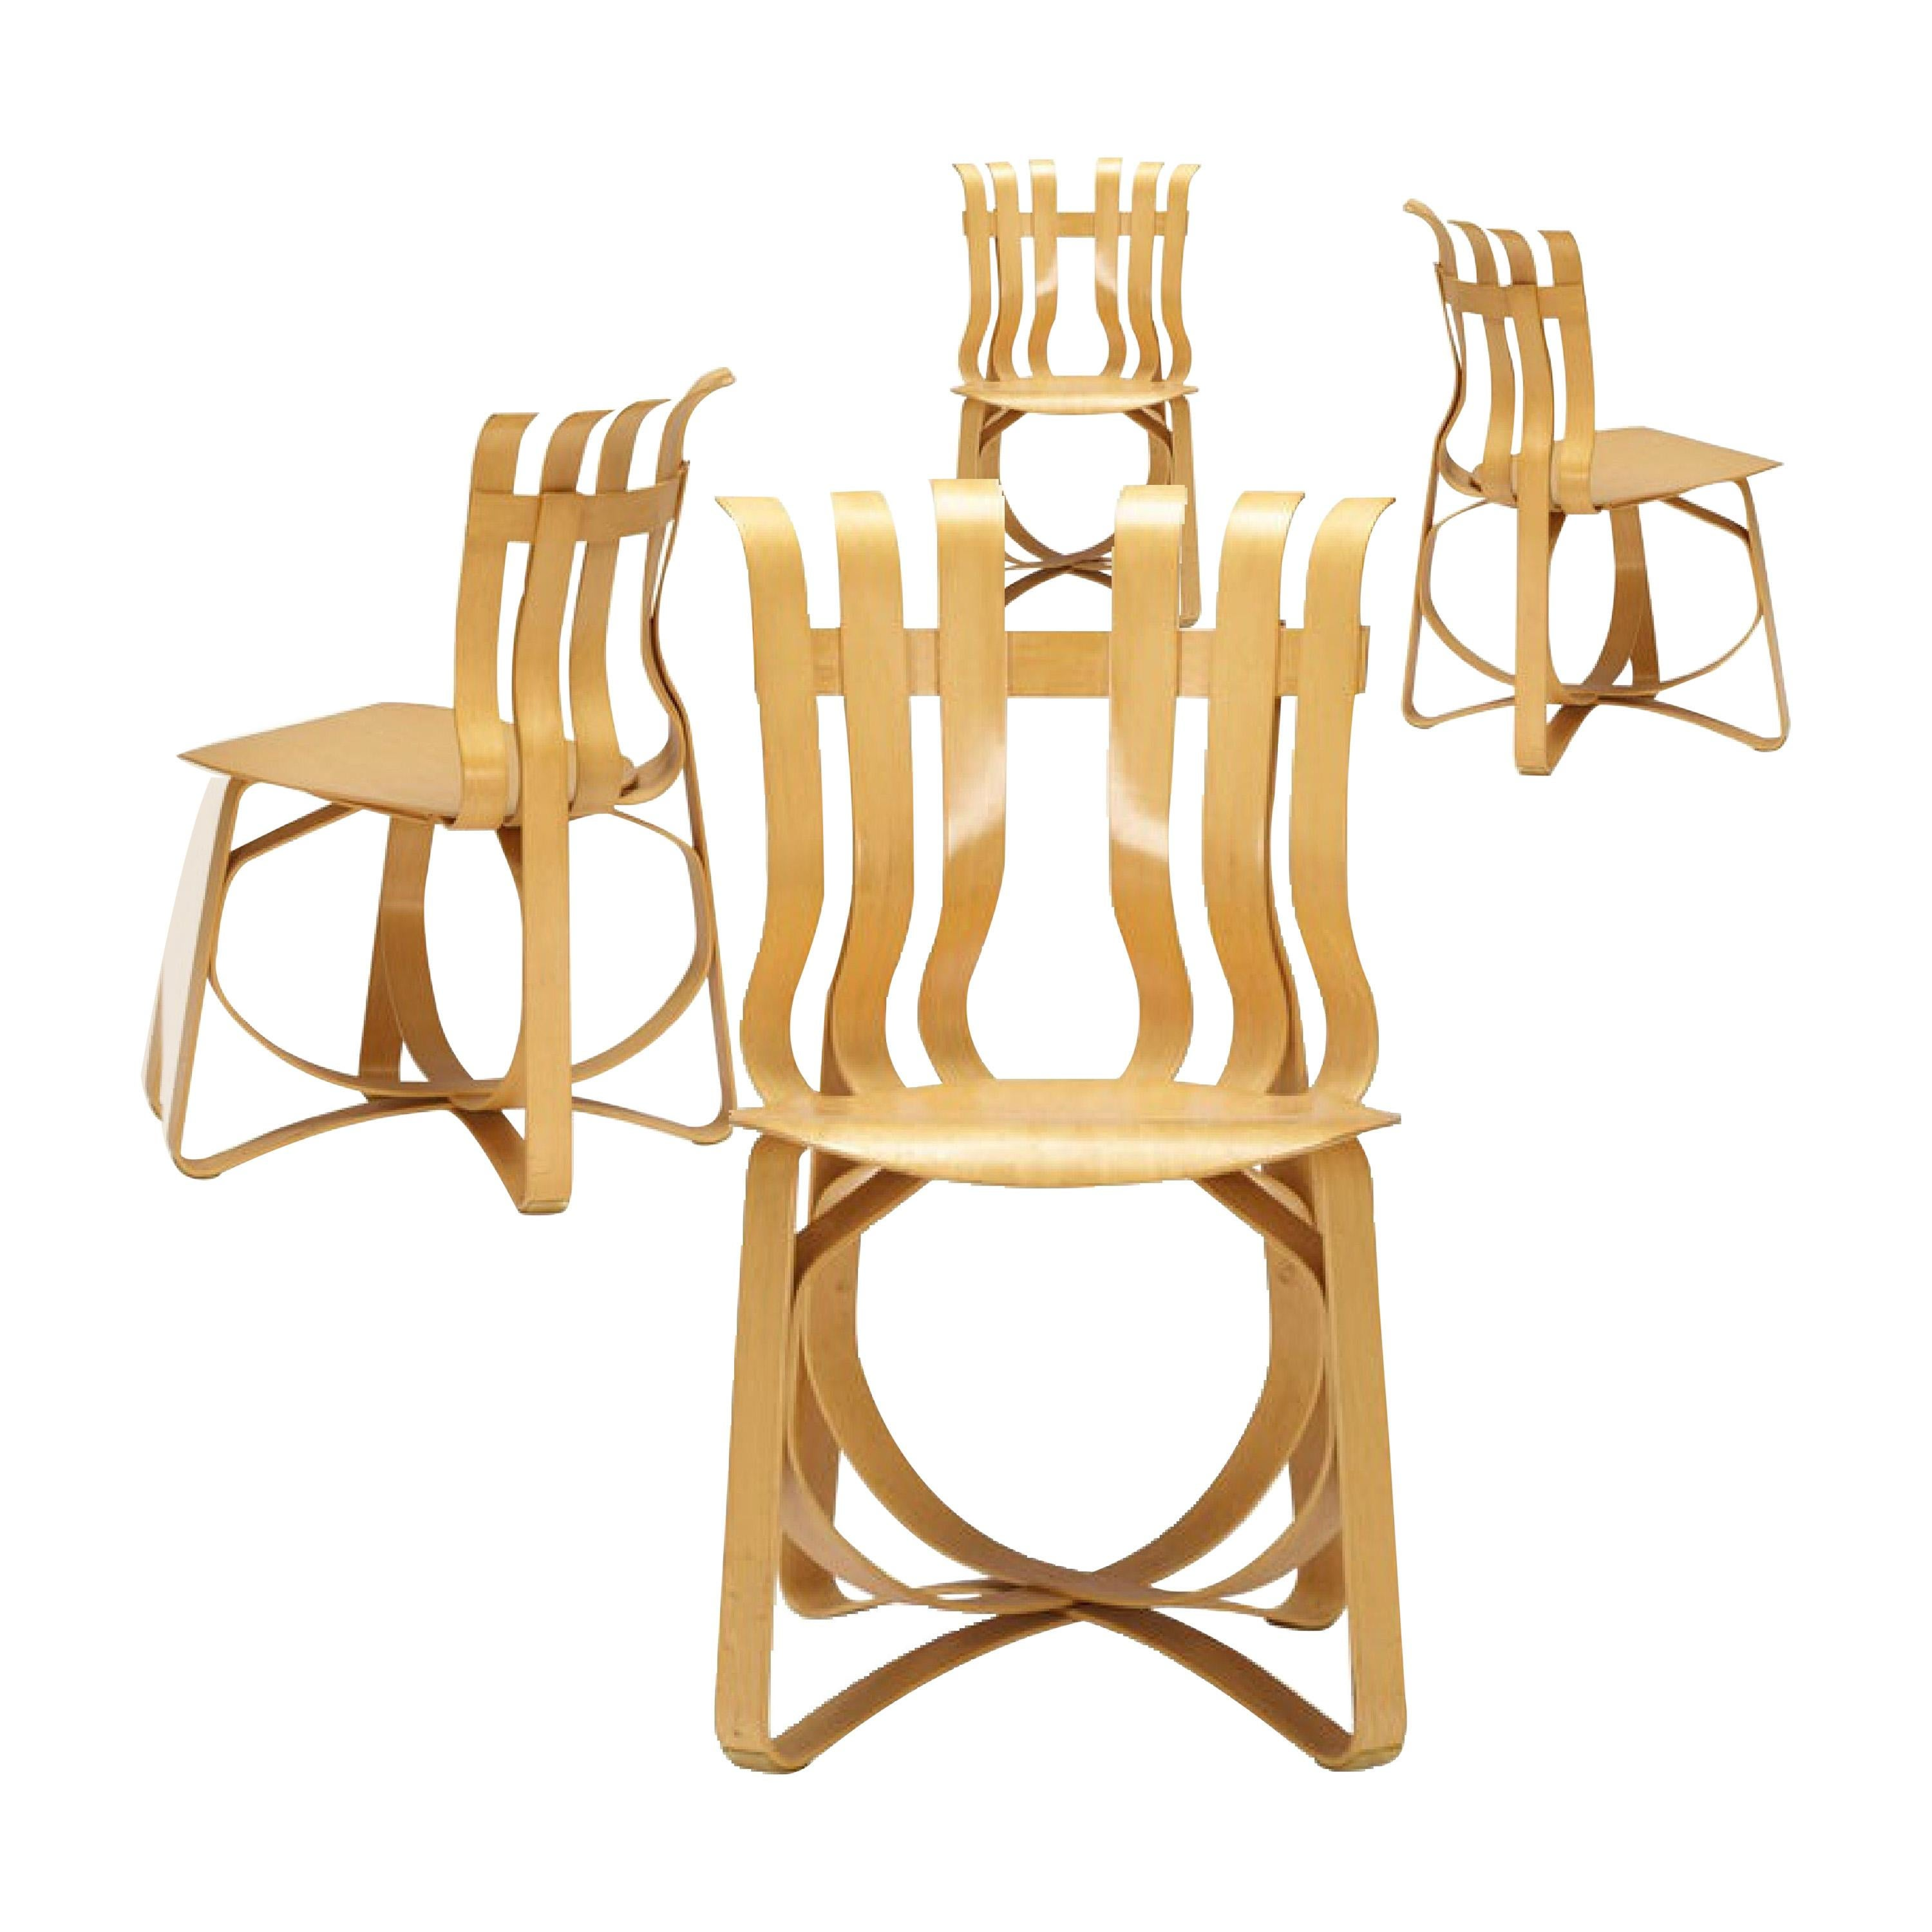 Frank Gehry for Knoll Hat Trick Chair, Set of 4, 1990